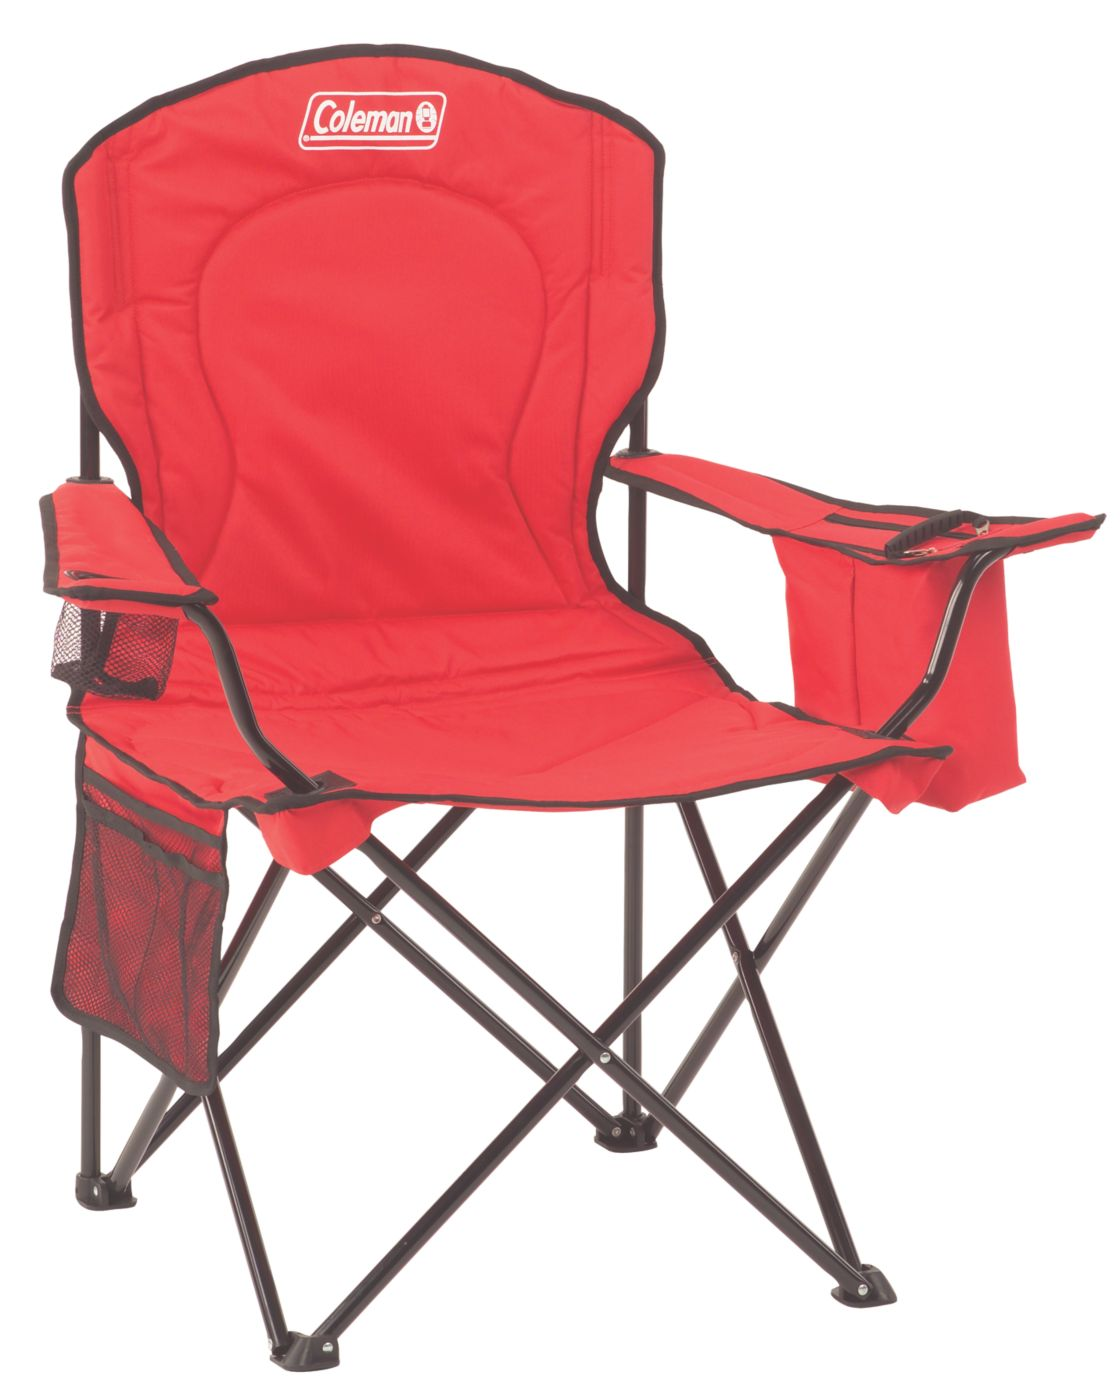 Camping Chair With Canopy Camping Folding Chairs Coleman